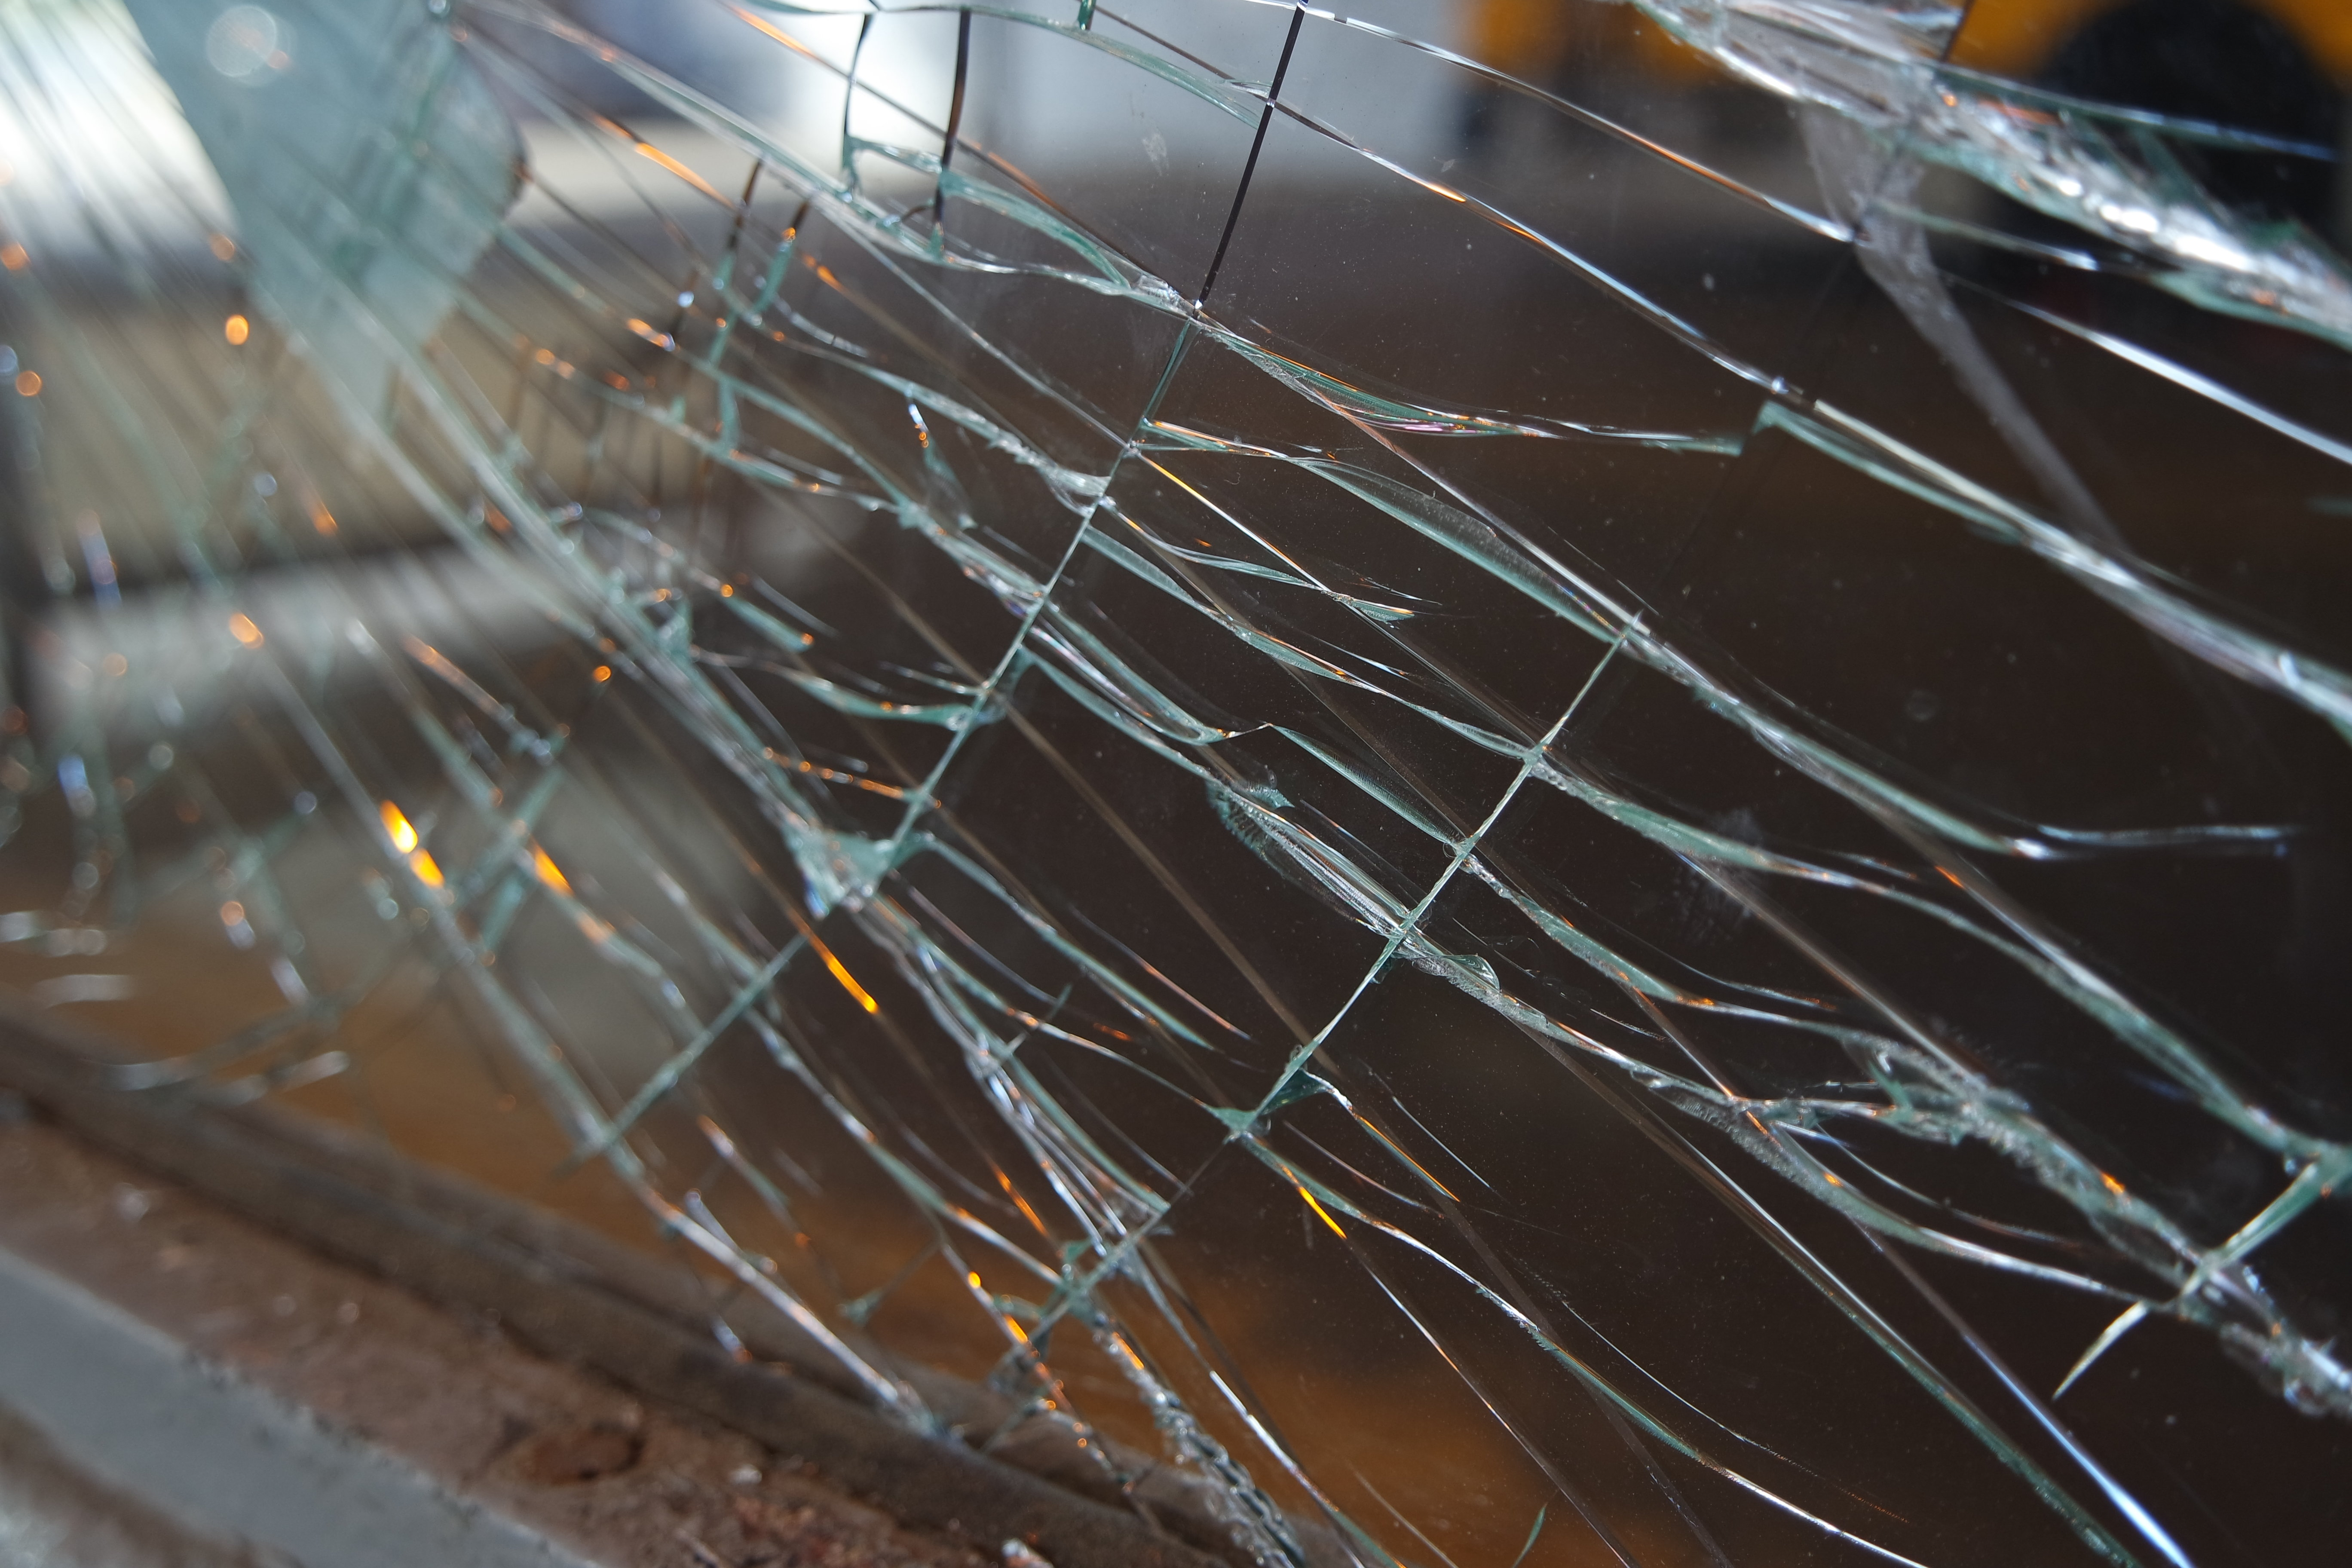 A sample photo of a broken window shot by the Samsung NX3000.